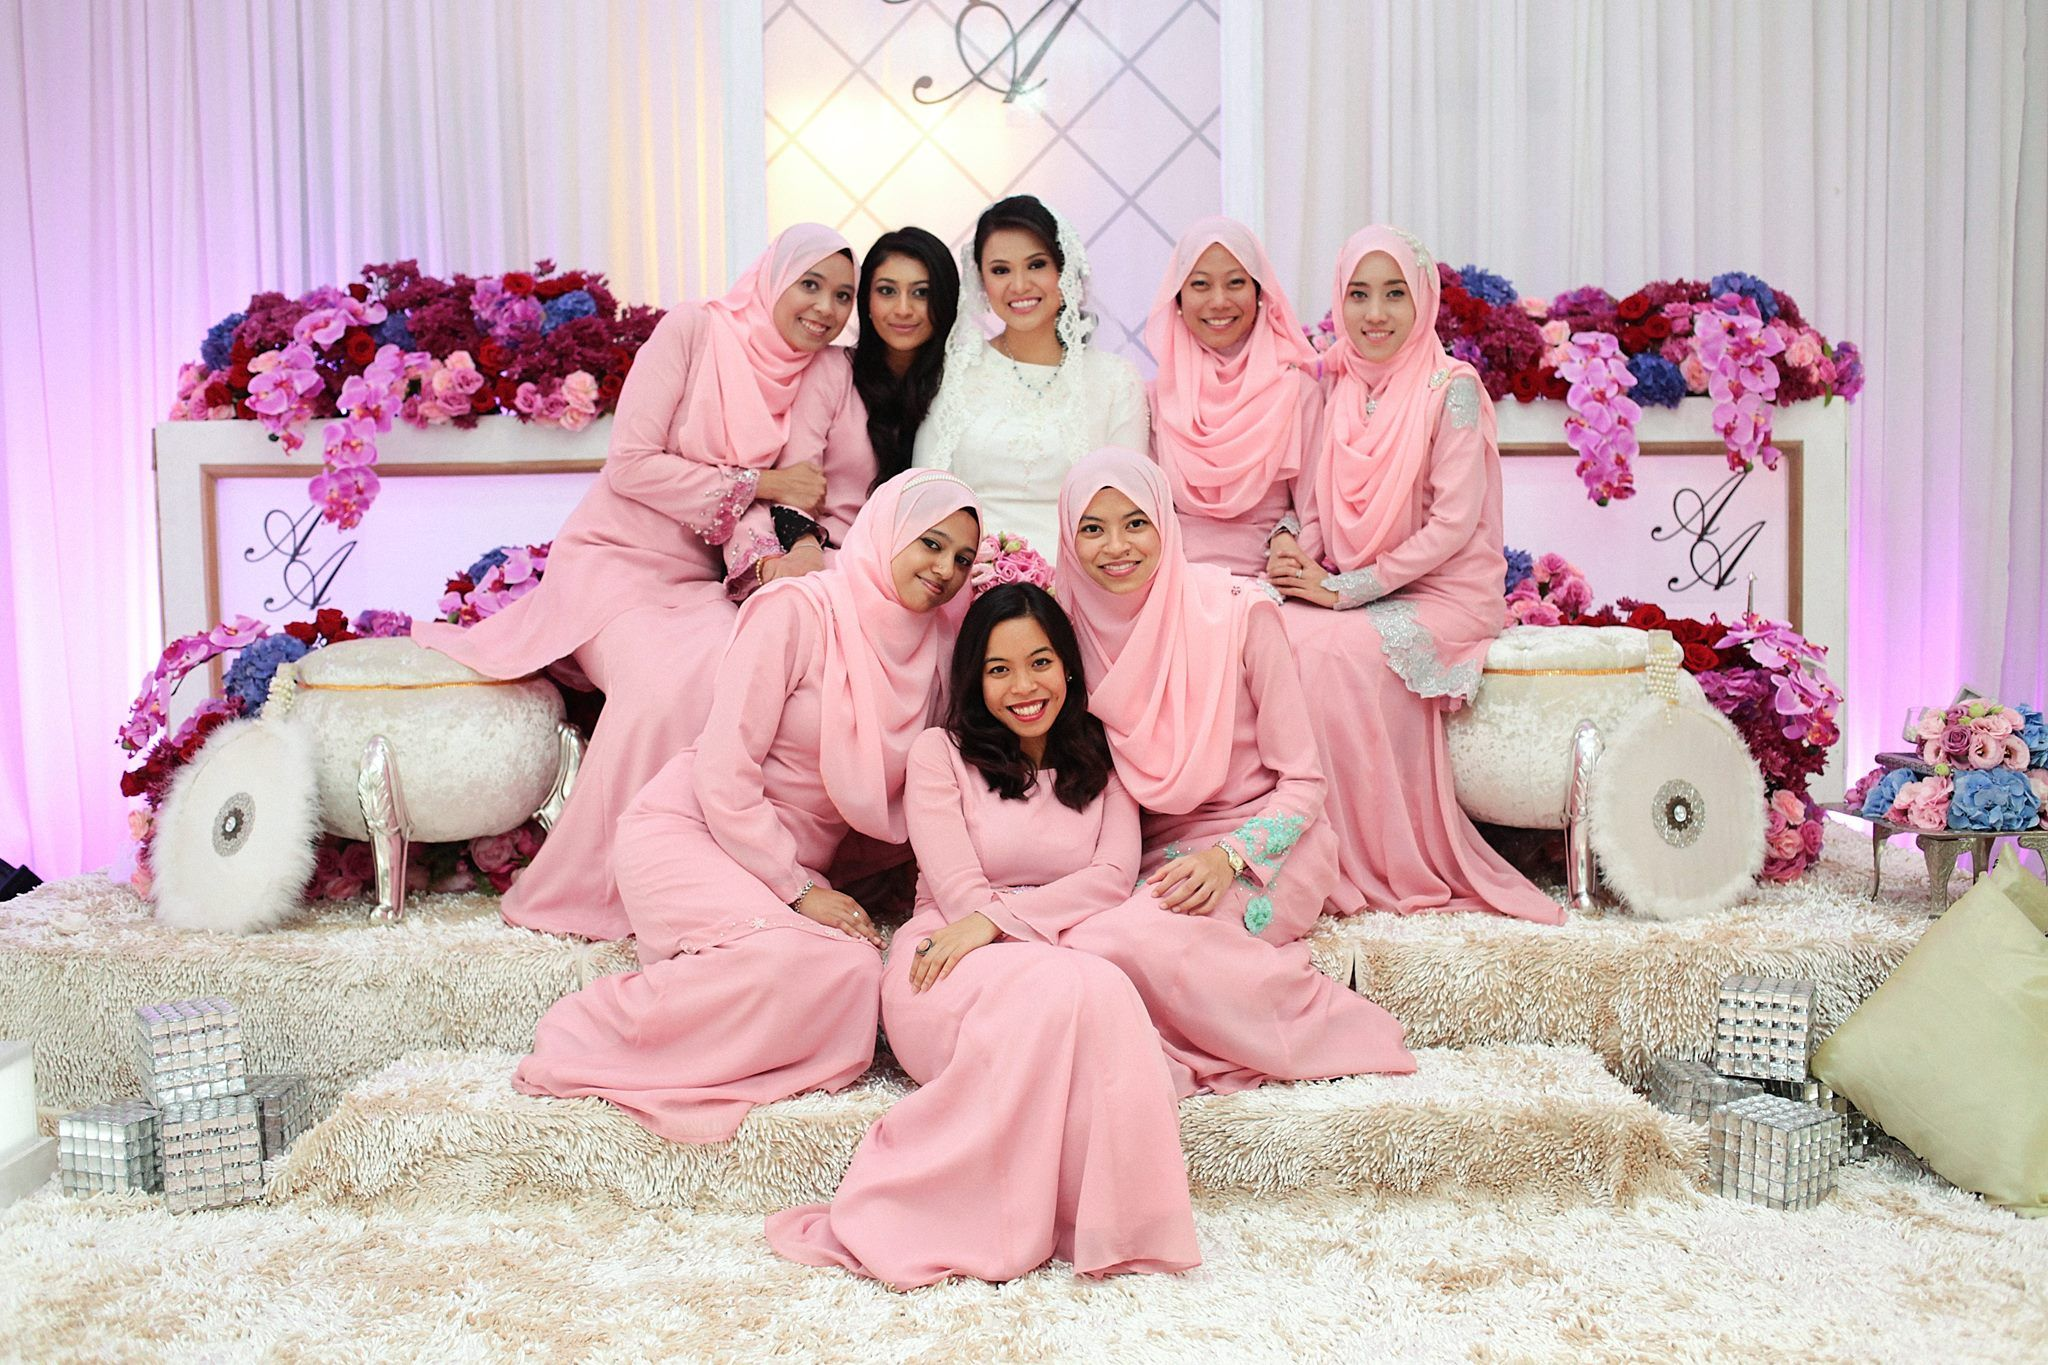 malay wedding the bride & the bridesmaids in pastel pink afnan omAR photography